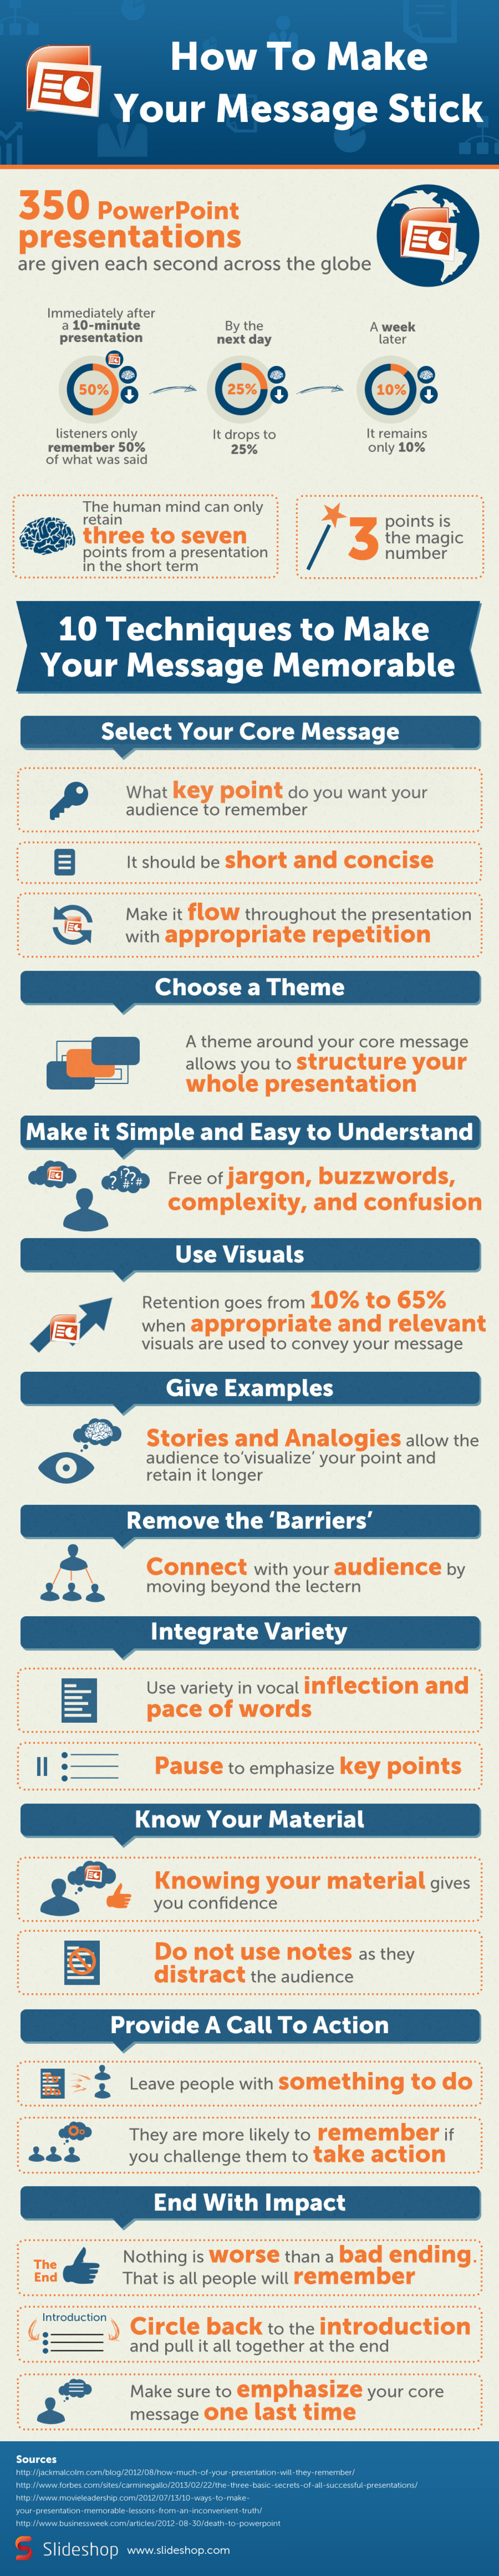 How To Make Your Message Stick Infographic